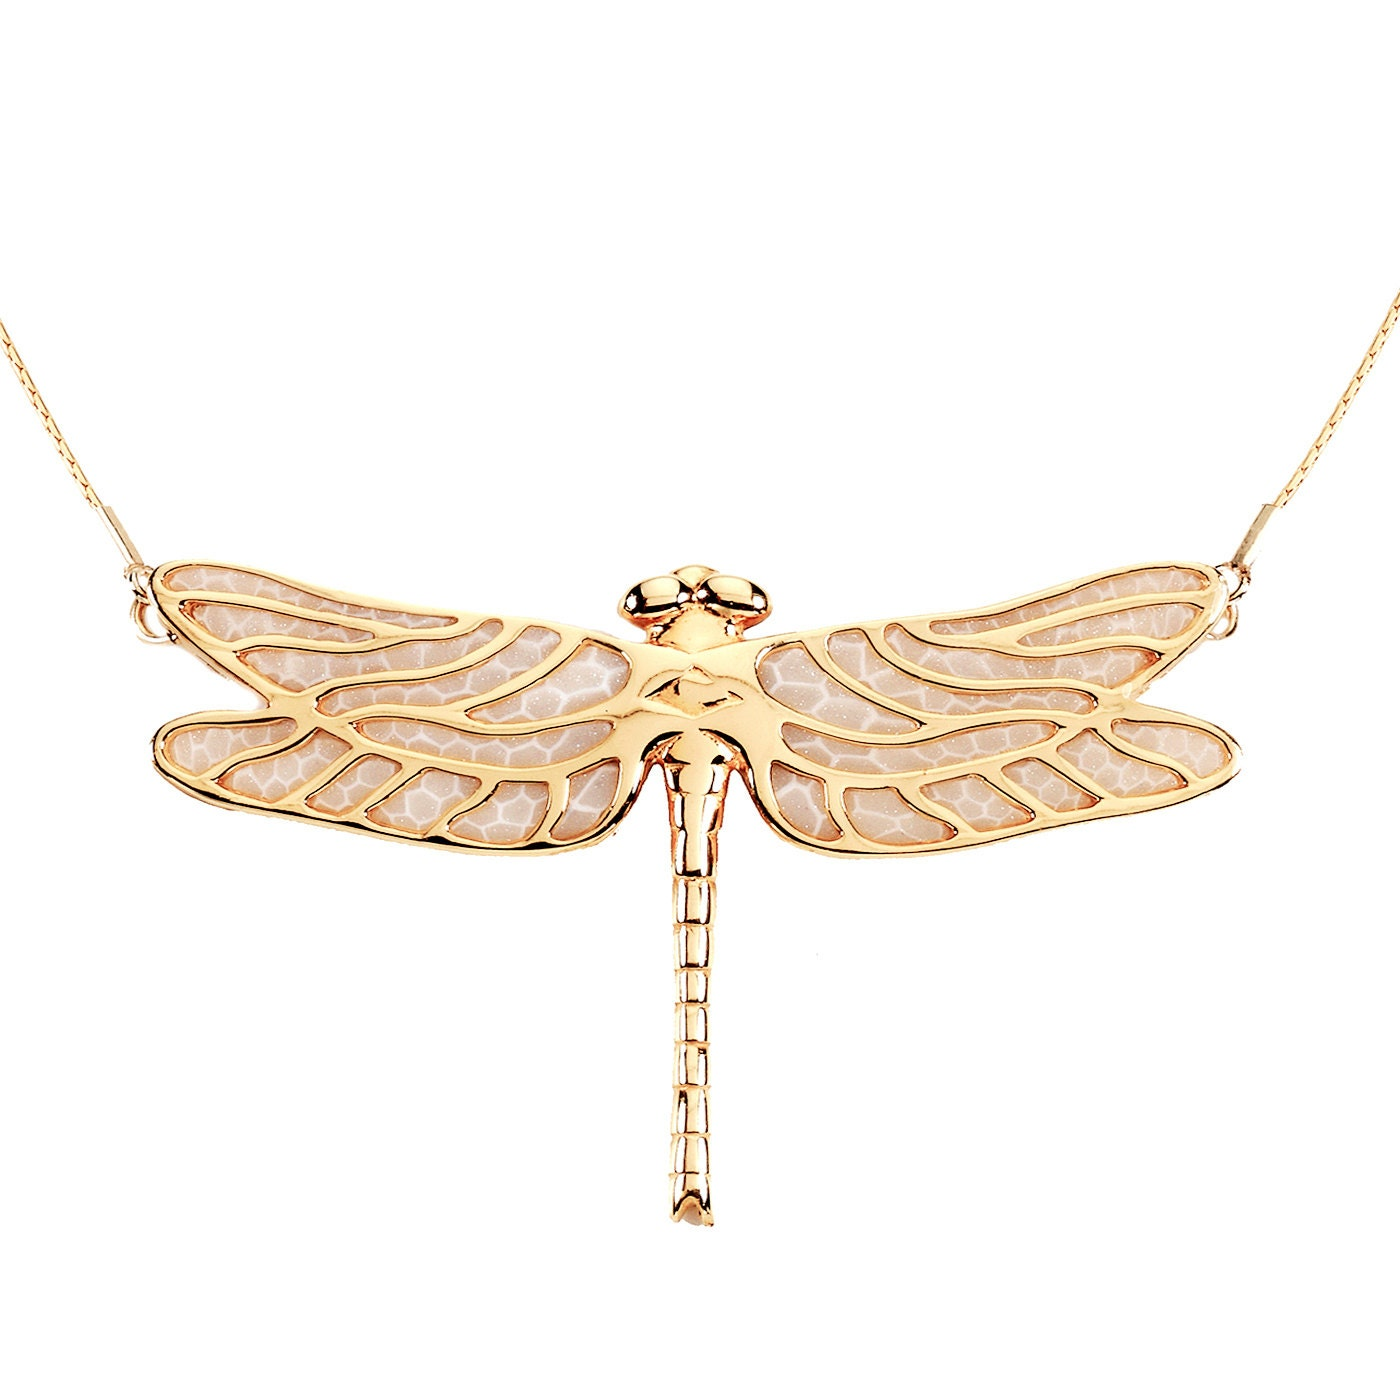 dragonfly necklace gold plated sterling silver handmade